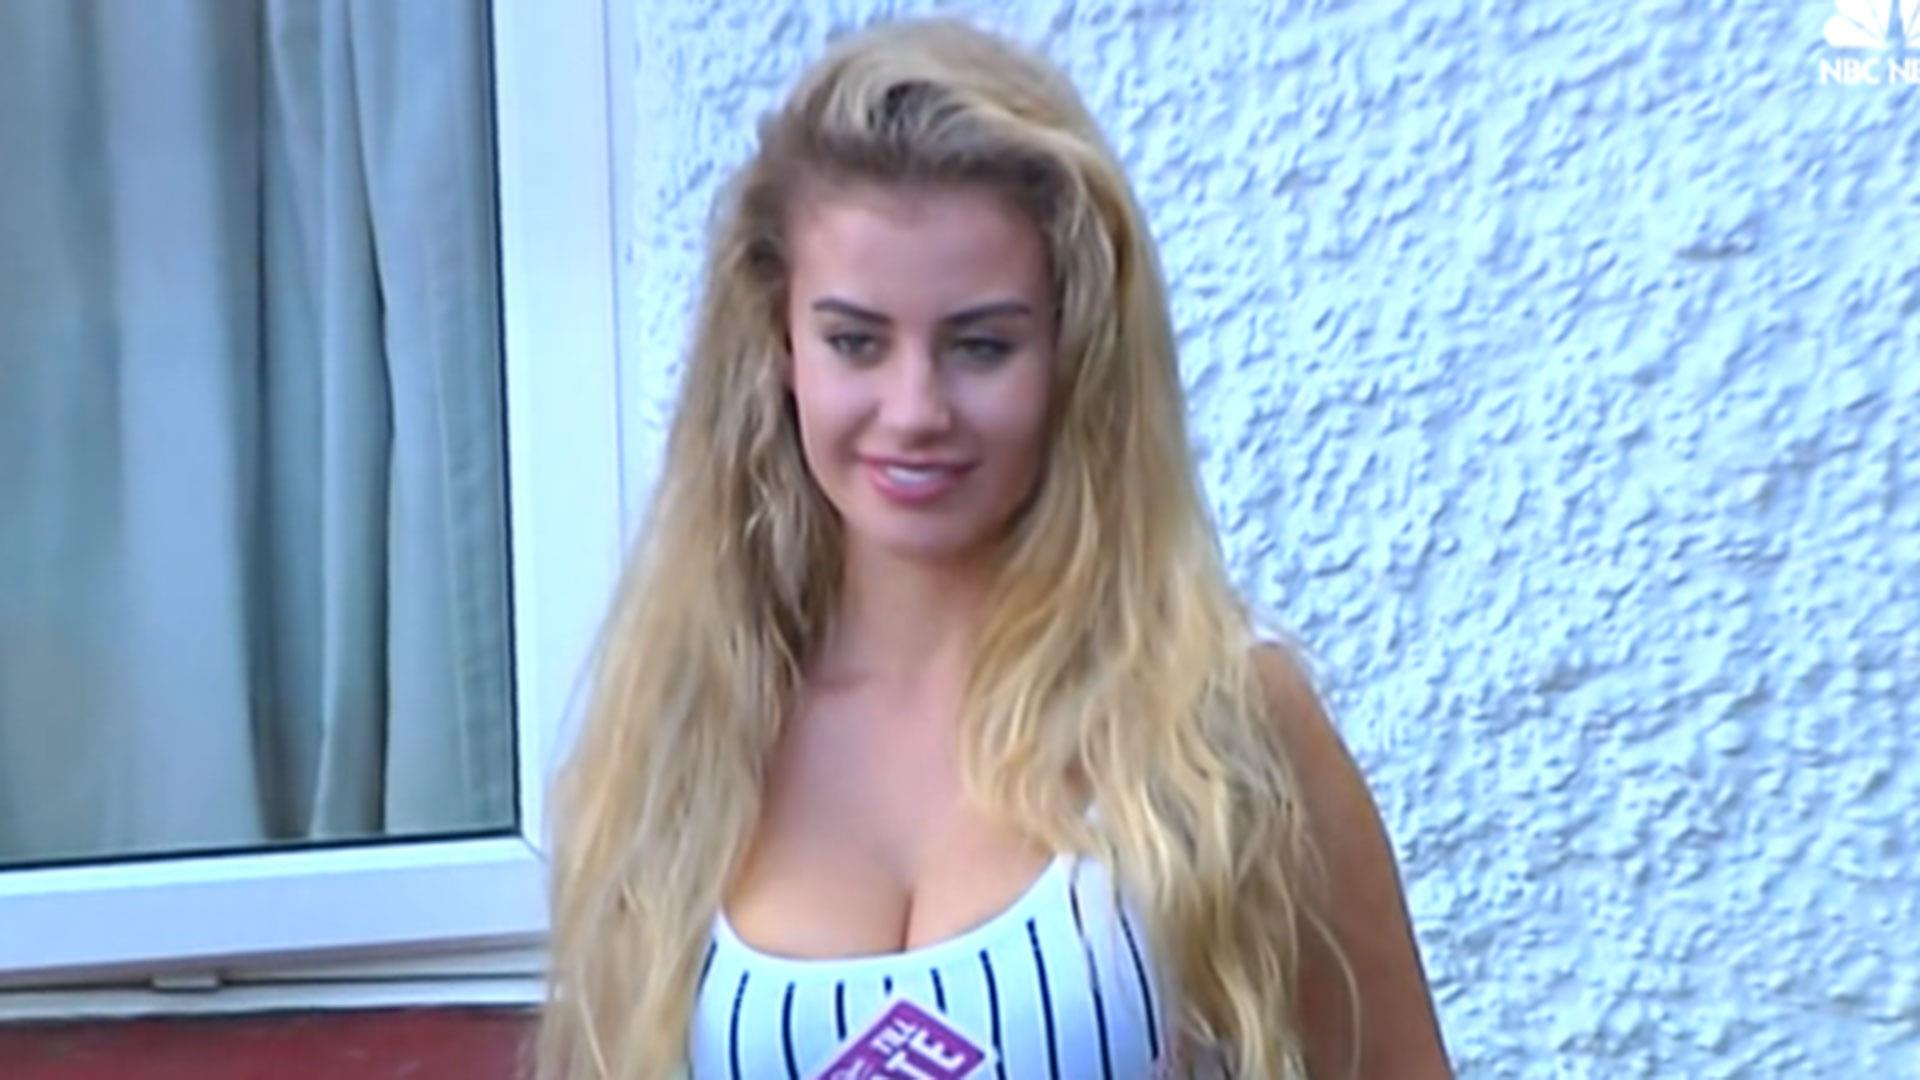 Best Girls Makeovers Wallpaper British Model Speaks Out After Alleged Kidnapping Nbc News